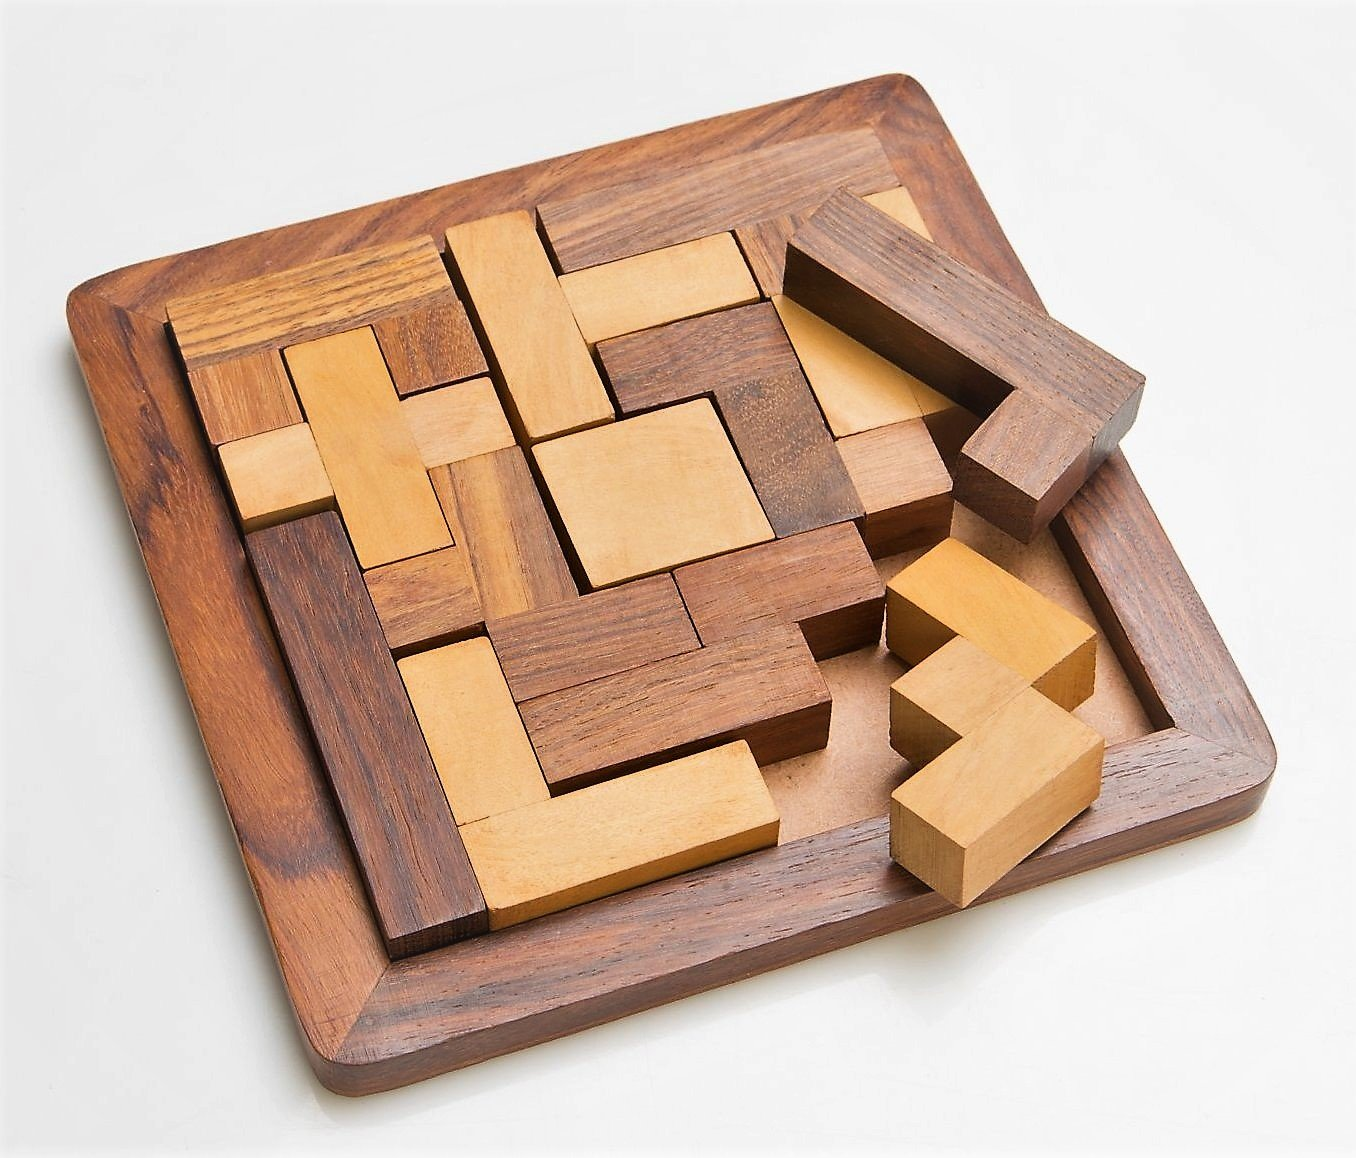 Toys & Games - Wooden Jigsaw Puzzle